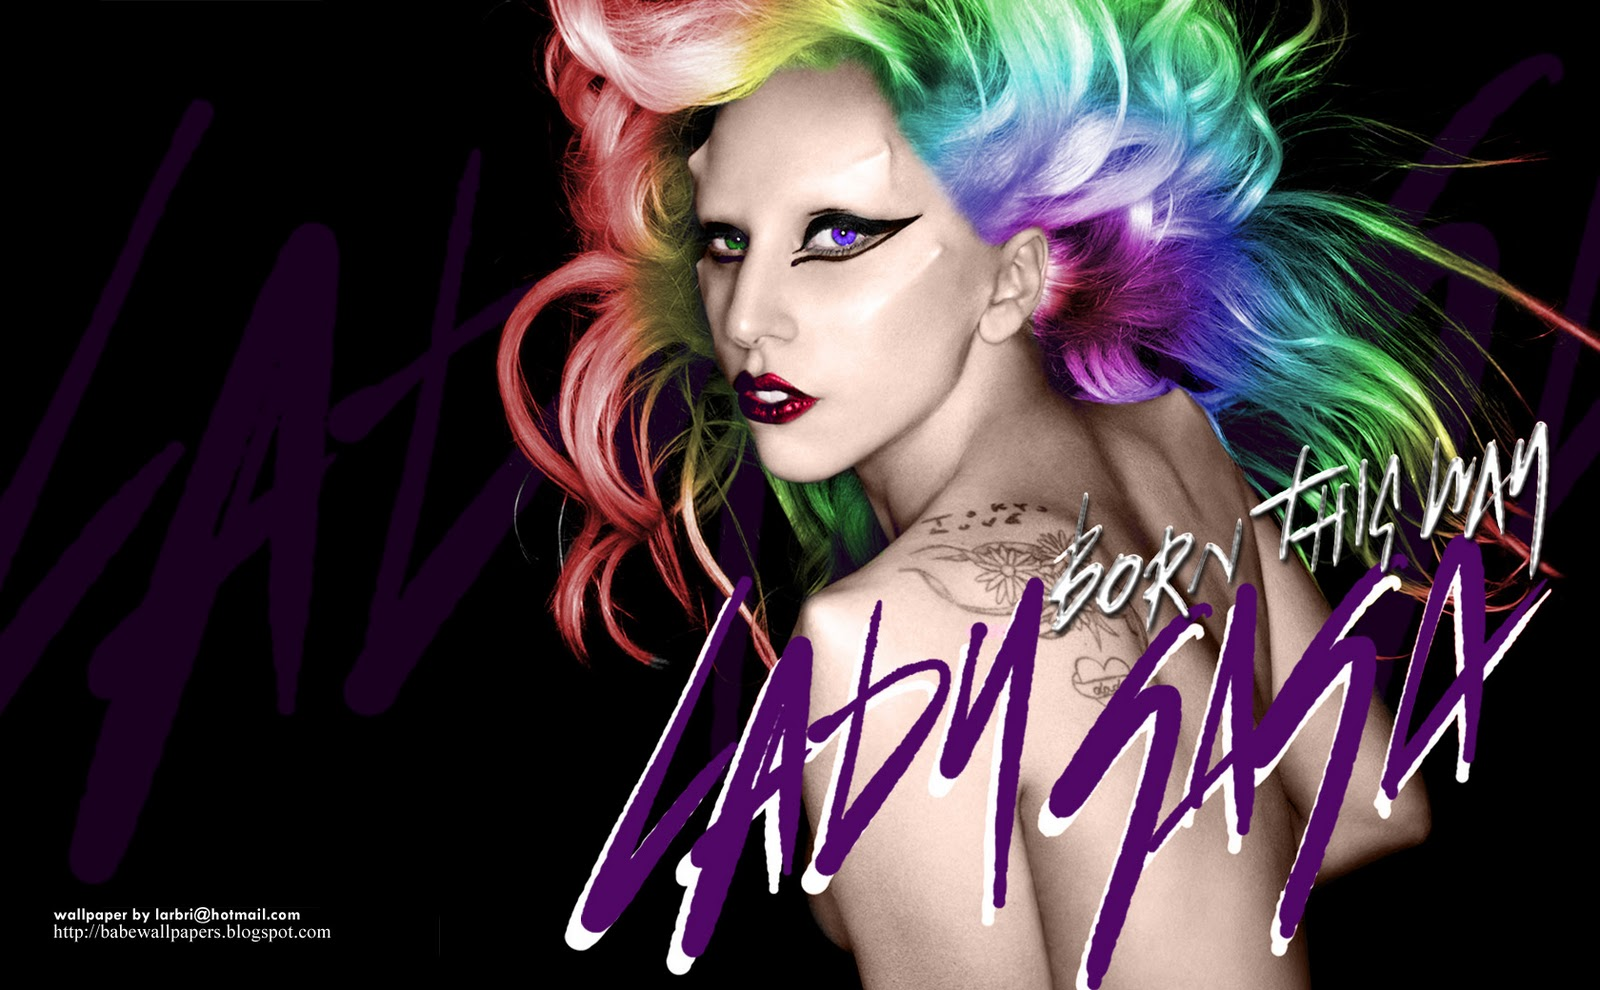 http://2.bp.blogspot.com/-OPMqJLcuJE8/Tq8wAfFwInI/AAAAAAAAD_M/OO9gm3lk1dM/s1600/Born+This+Way+-+LADY+GAGA.jpg